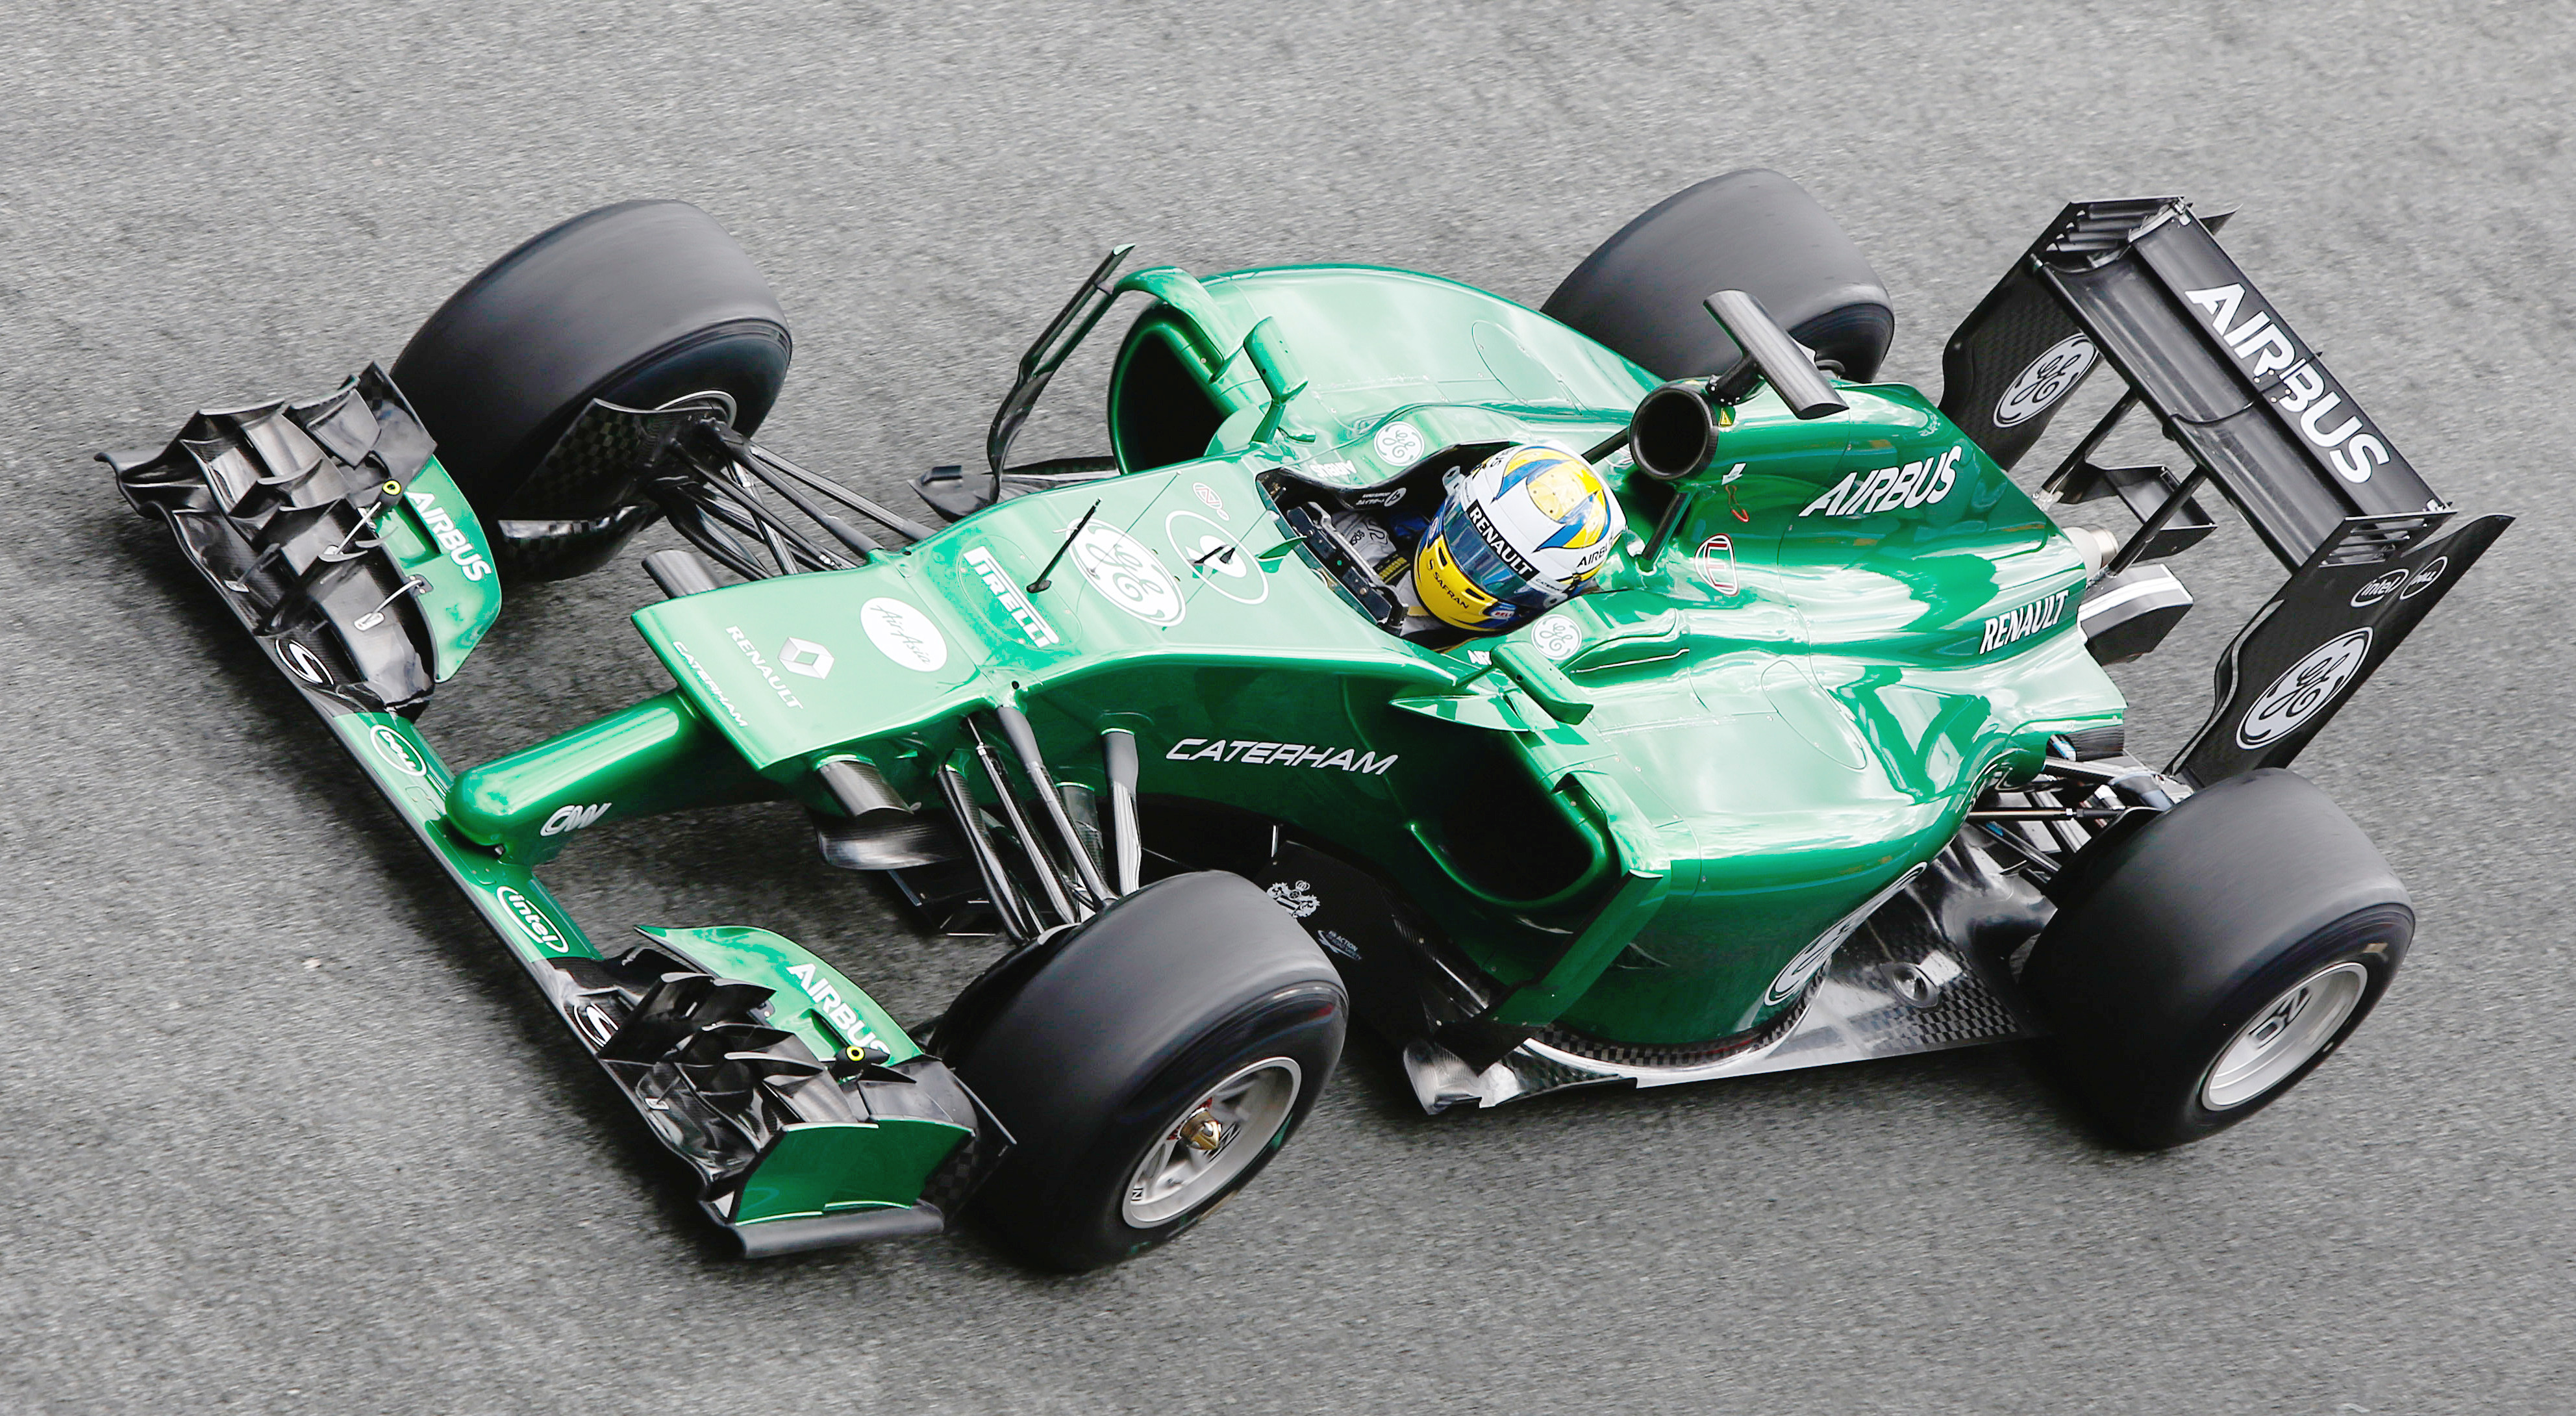 caterham-ct05-test-jerez.jpg